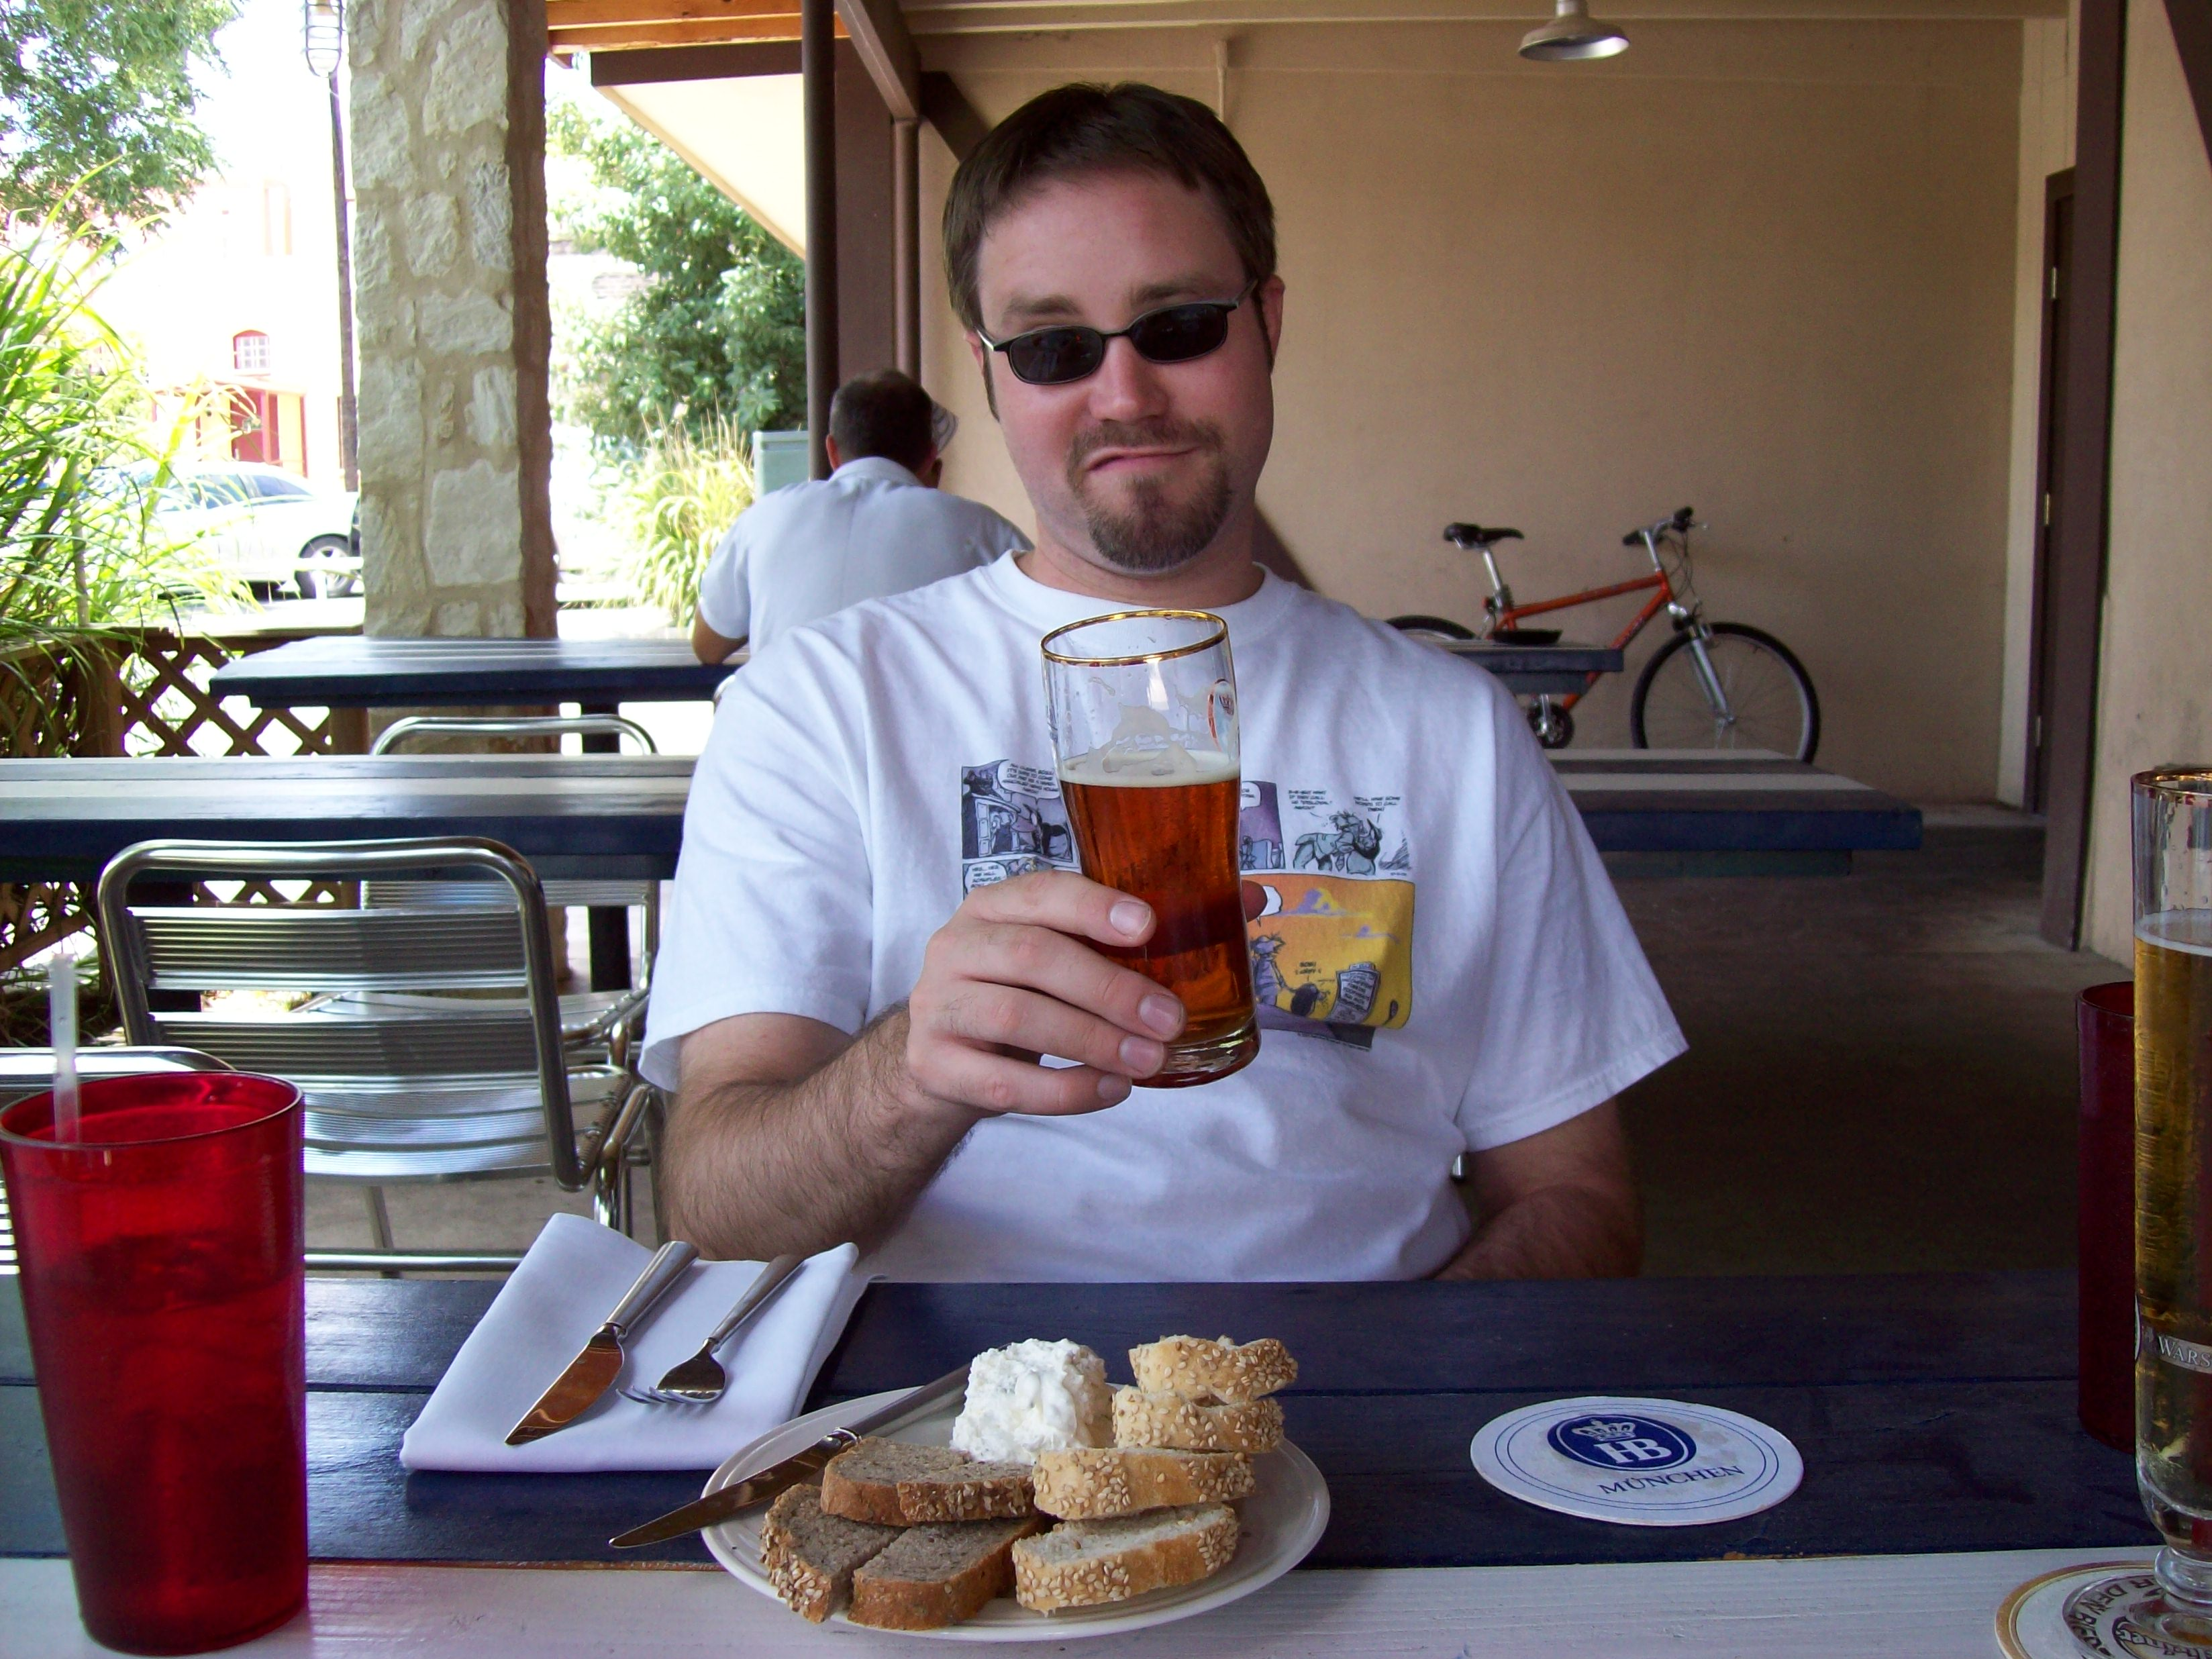 A random photo of me drinking a Maibock in New Braunfels. Ahhh ... vacation.